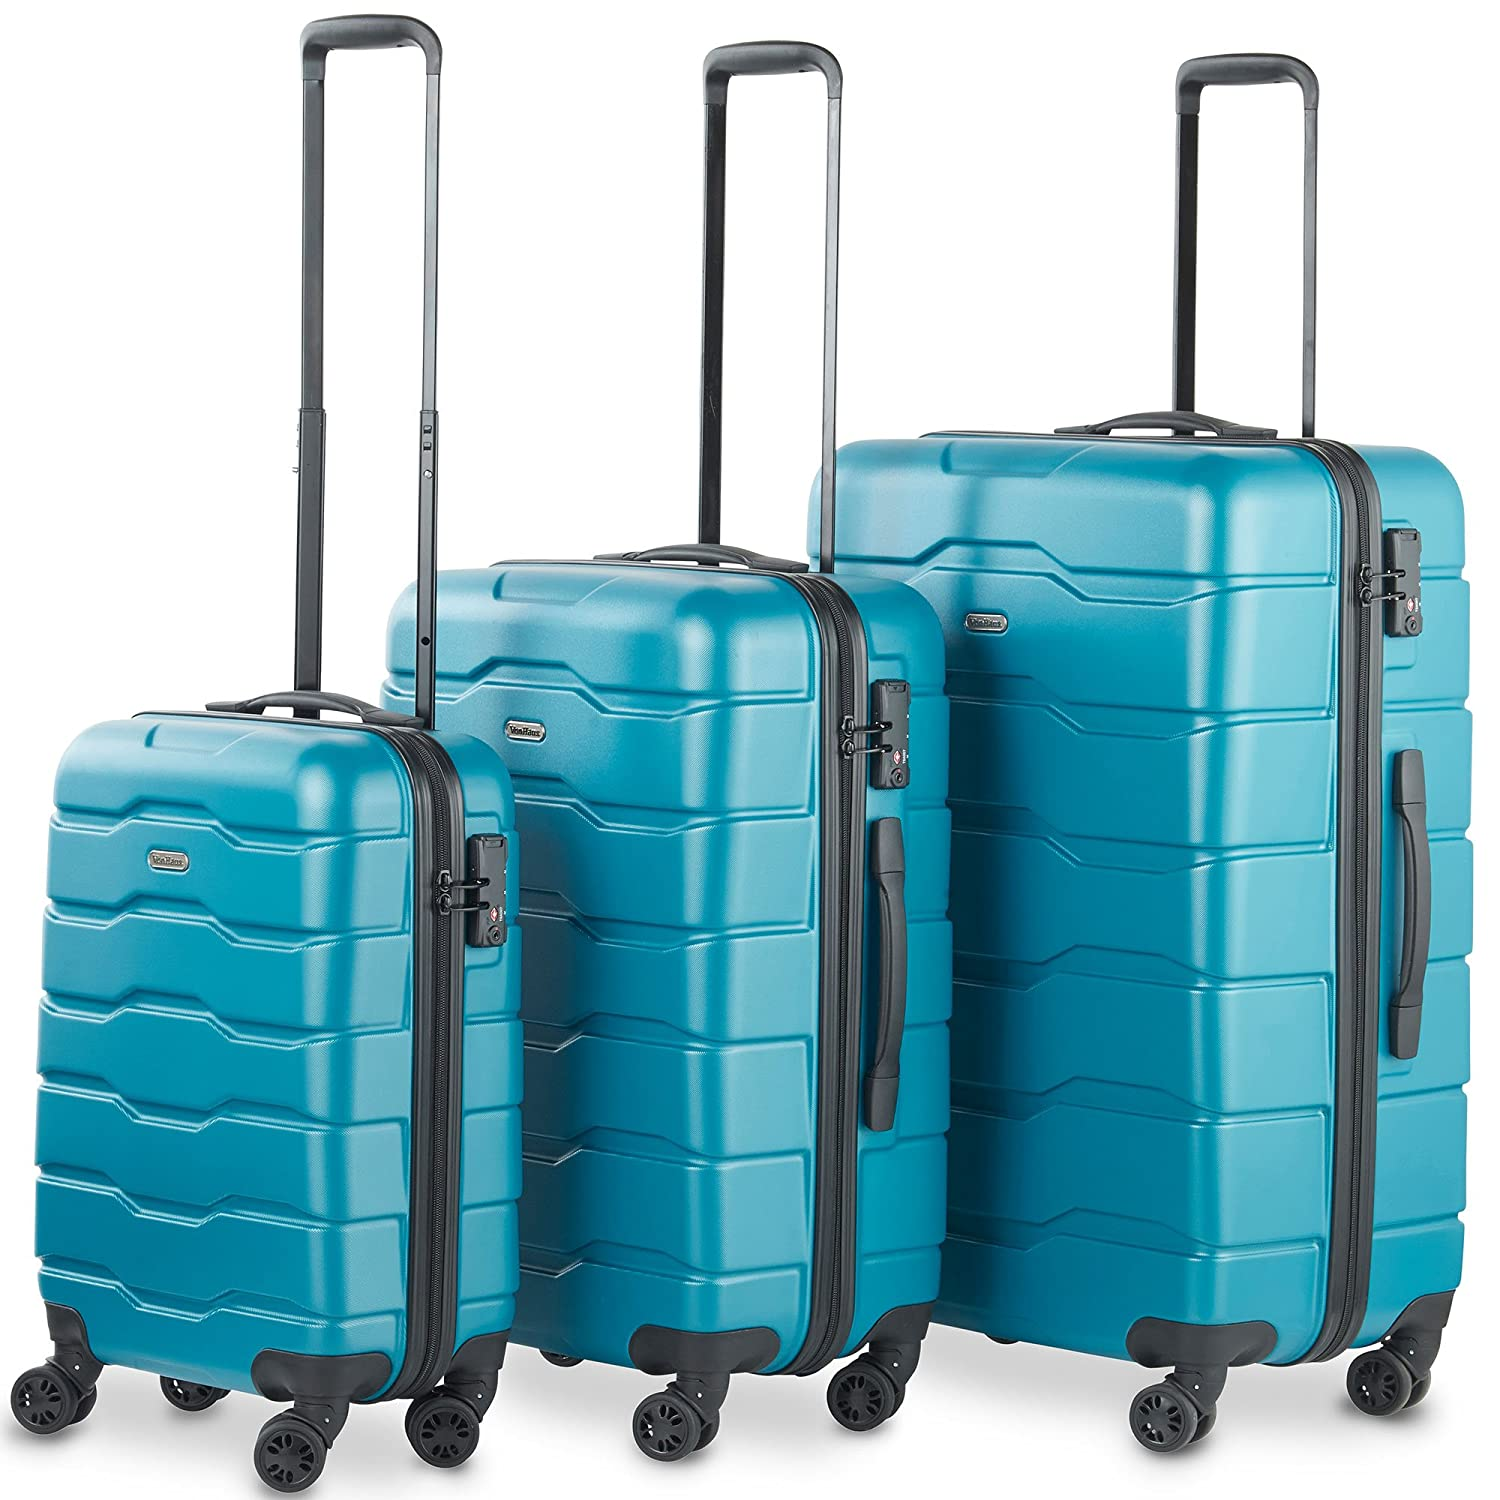 5228d4acaaad VonHaus Premium 3 Piece Lightweight Luggage Set – Hardshell with TSA  Integrated Lock, Spinner Rolling Wheels - Teal